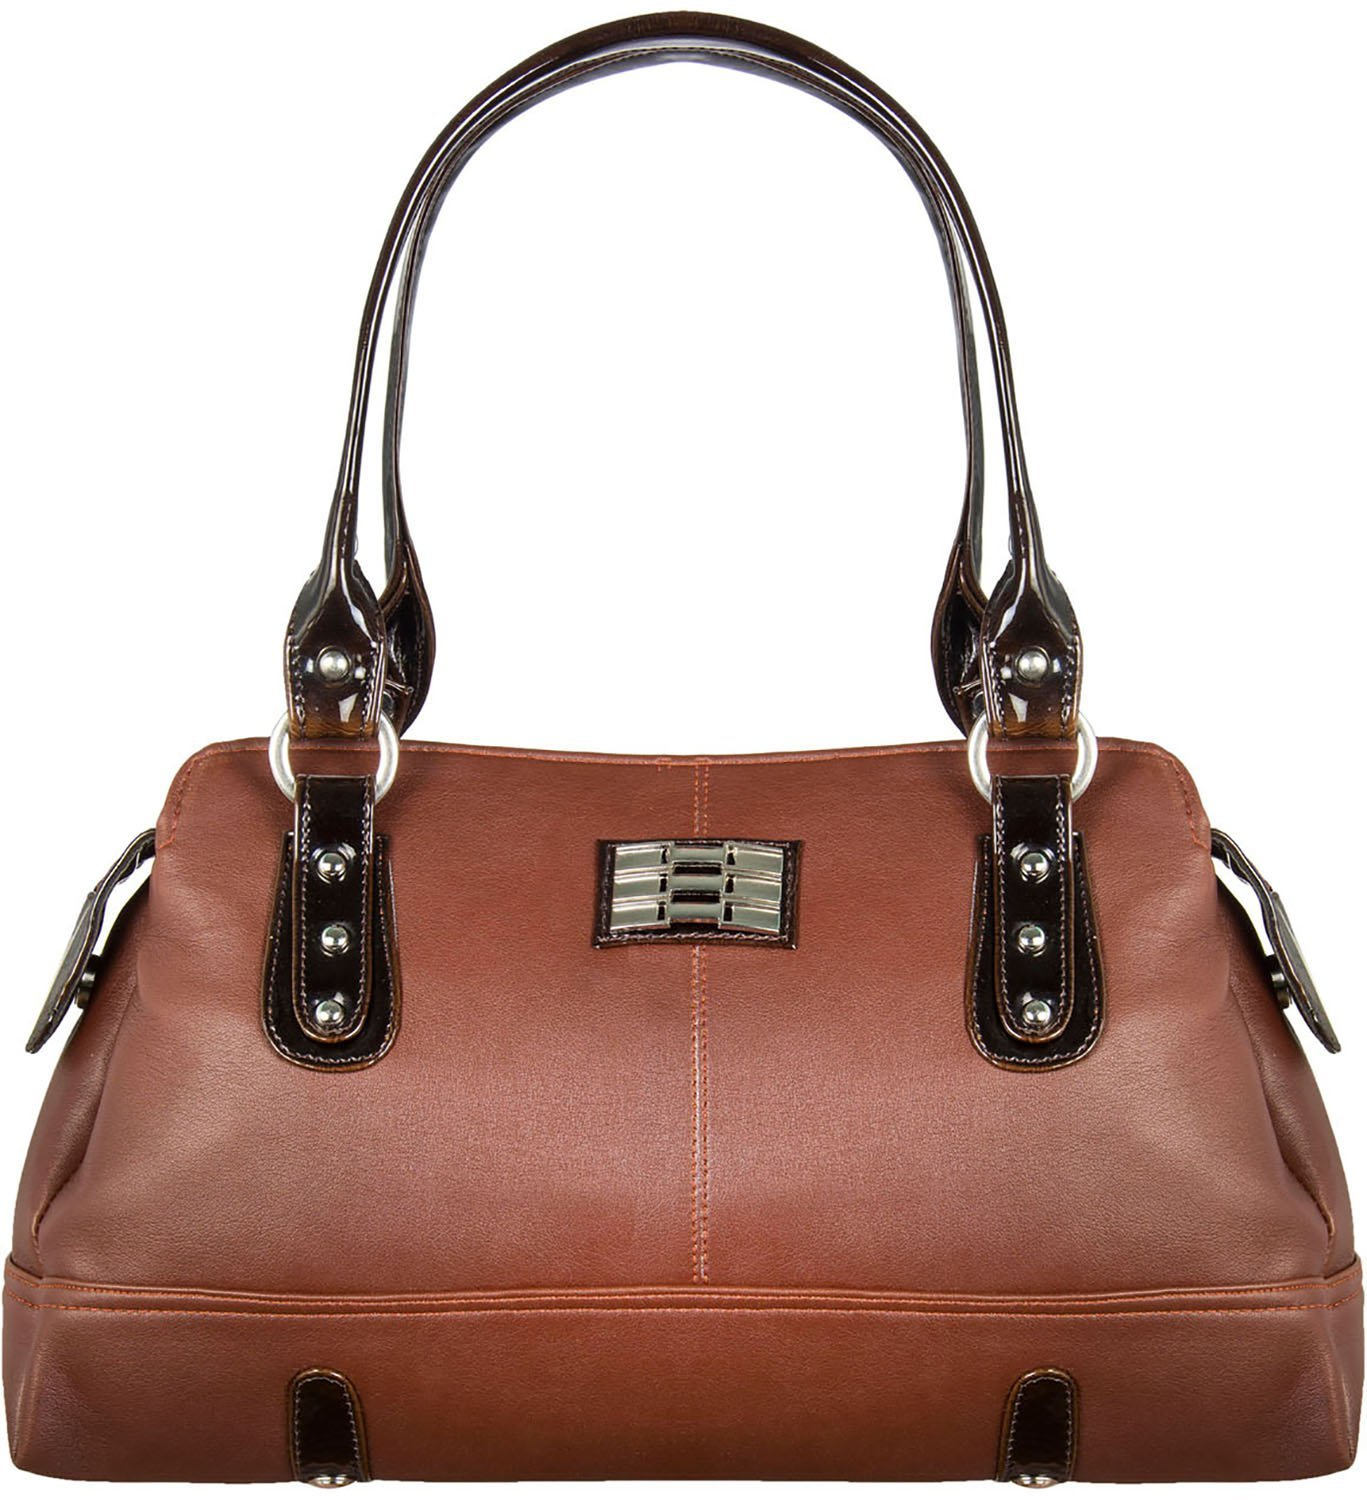 Louise Belgium Women's Handbag Brown